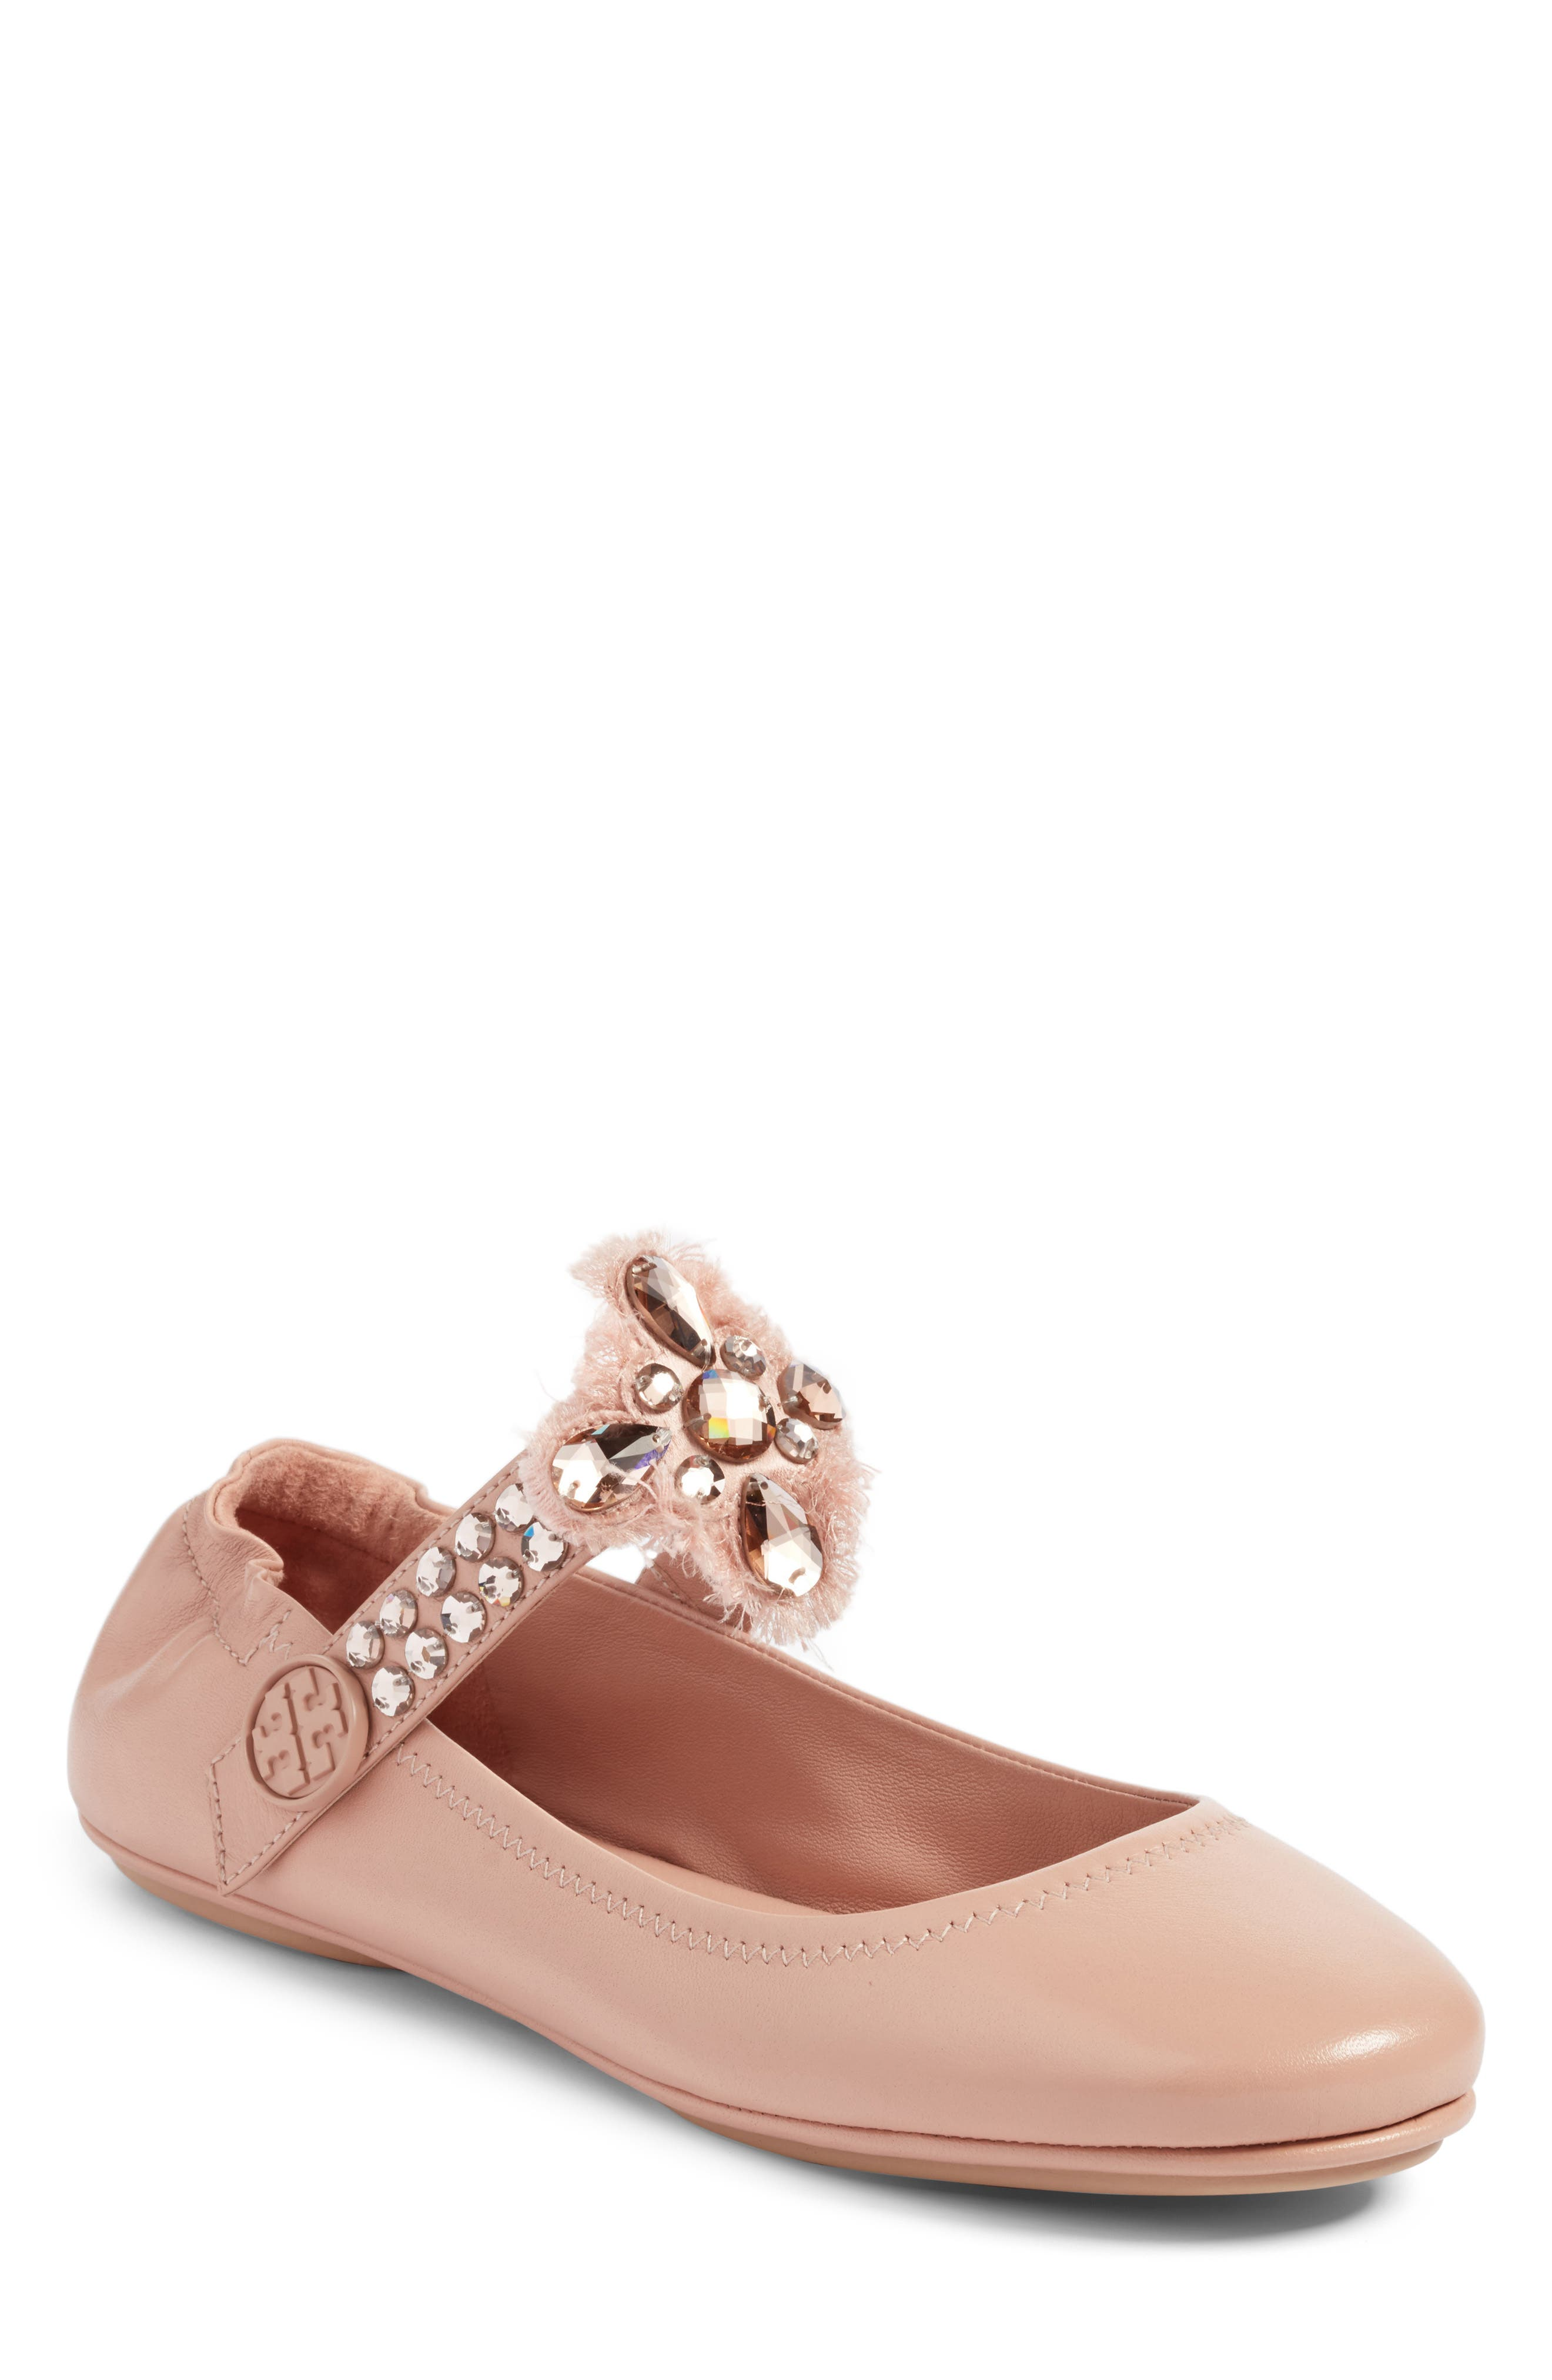 Tory Burch Minnie Embellished Convertible Strap Ballet Flat (Women)